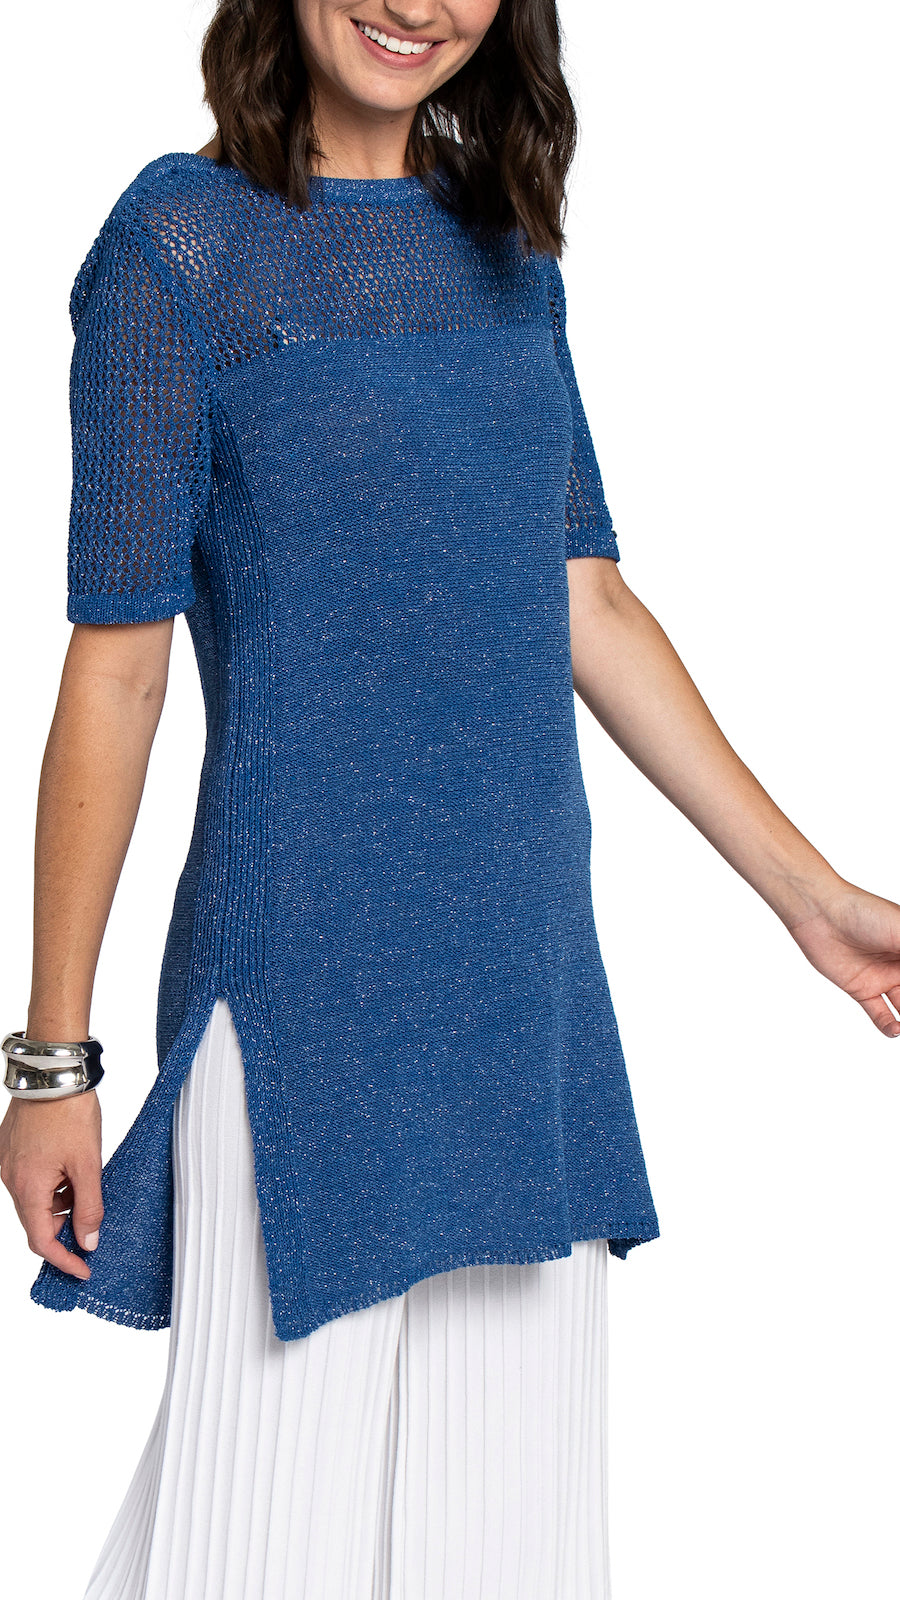 CONTEMPO Heidi Knitted Tunic, Shimmery Sky Blue